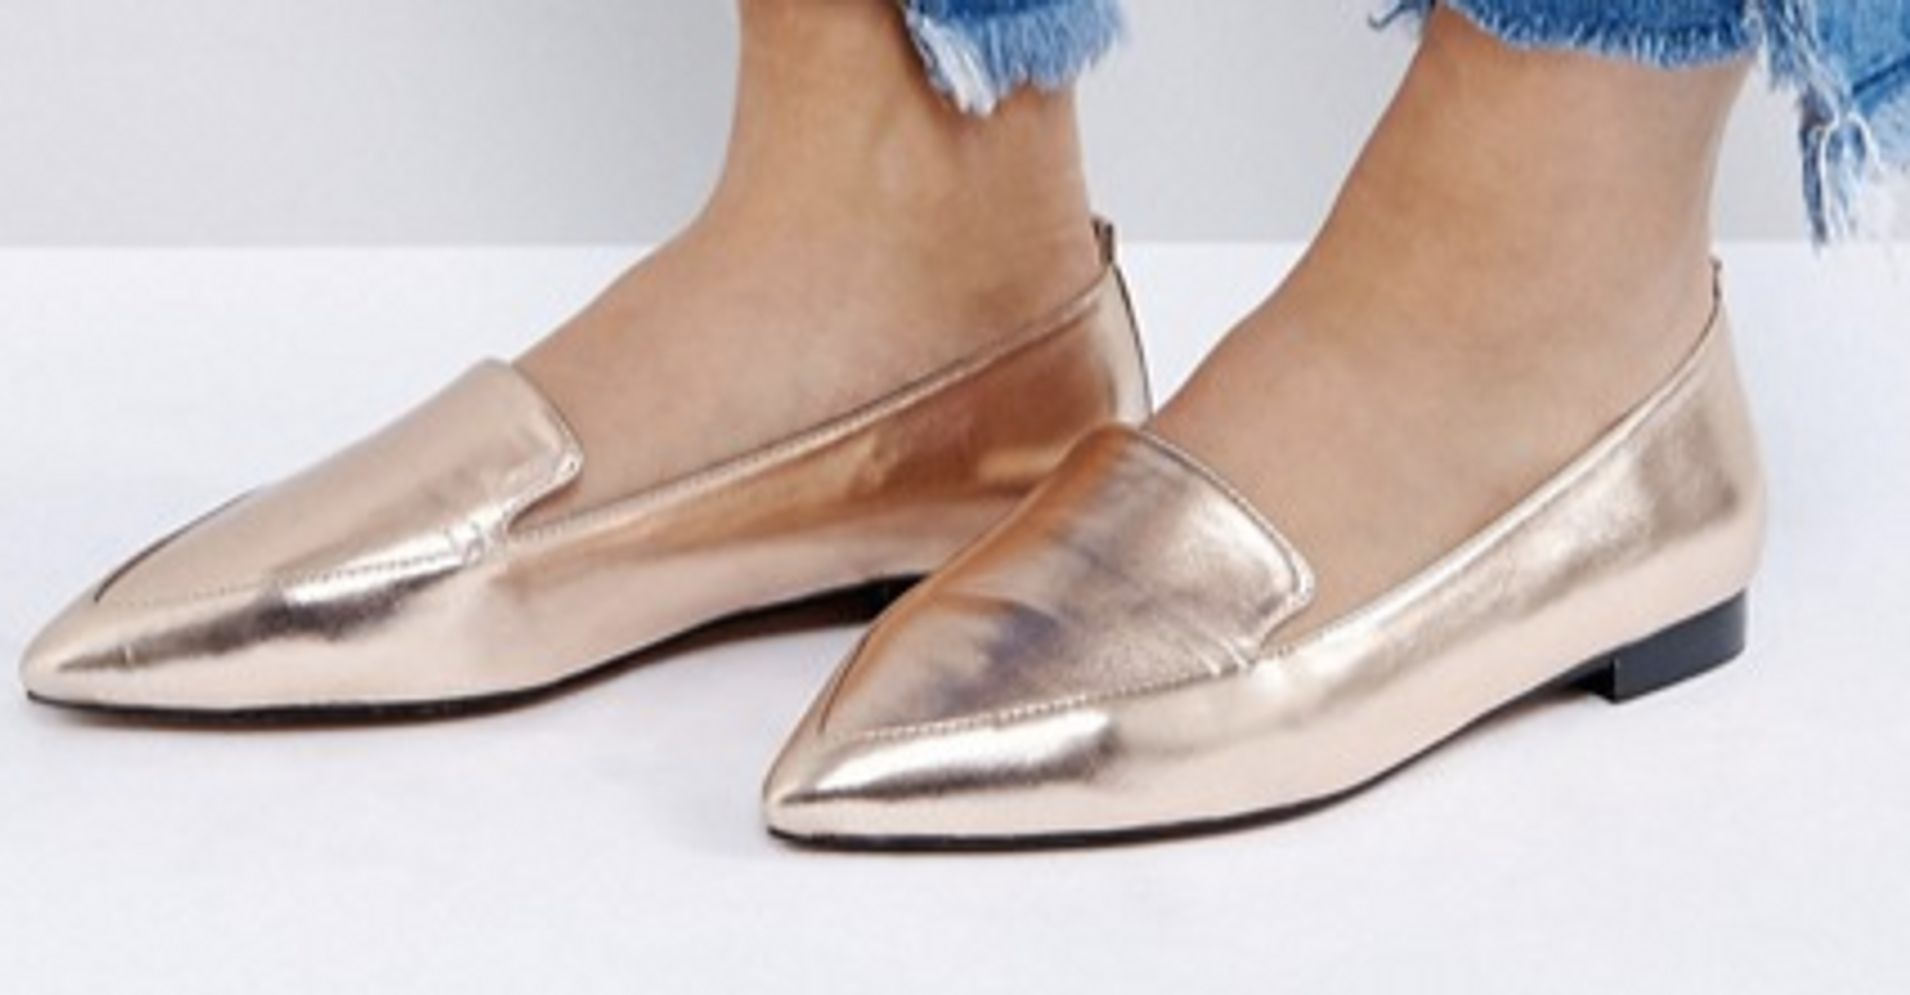 29 Roomy Loafers For Women With Wide Feet Huffpost